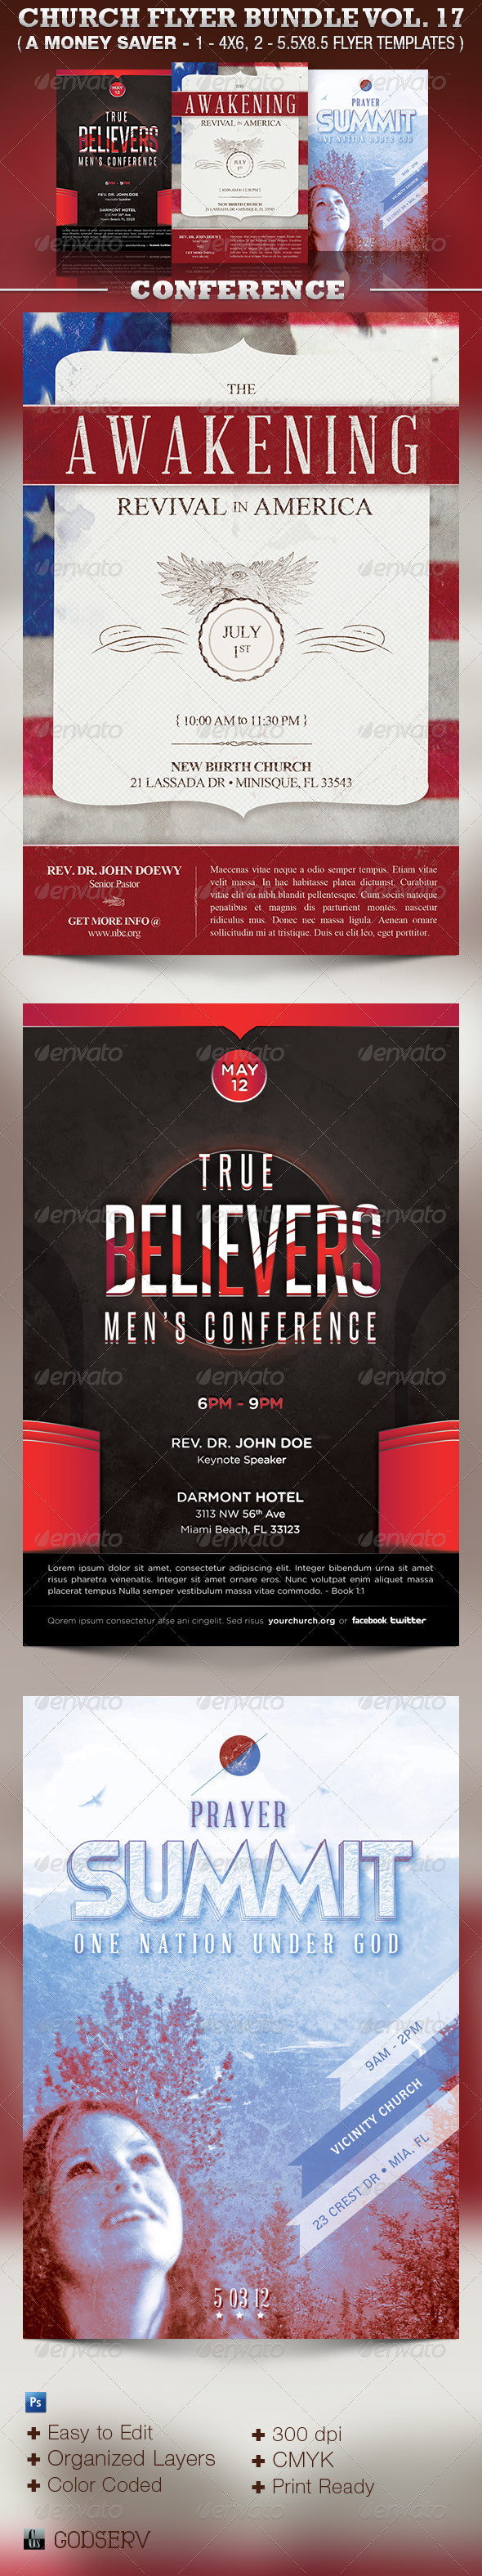 Church Flyer Template Bundle Vol 17: Conventions - Church Flyers